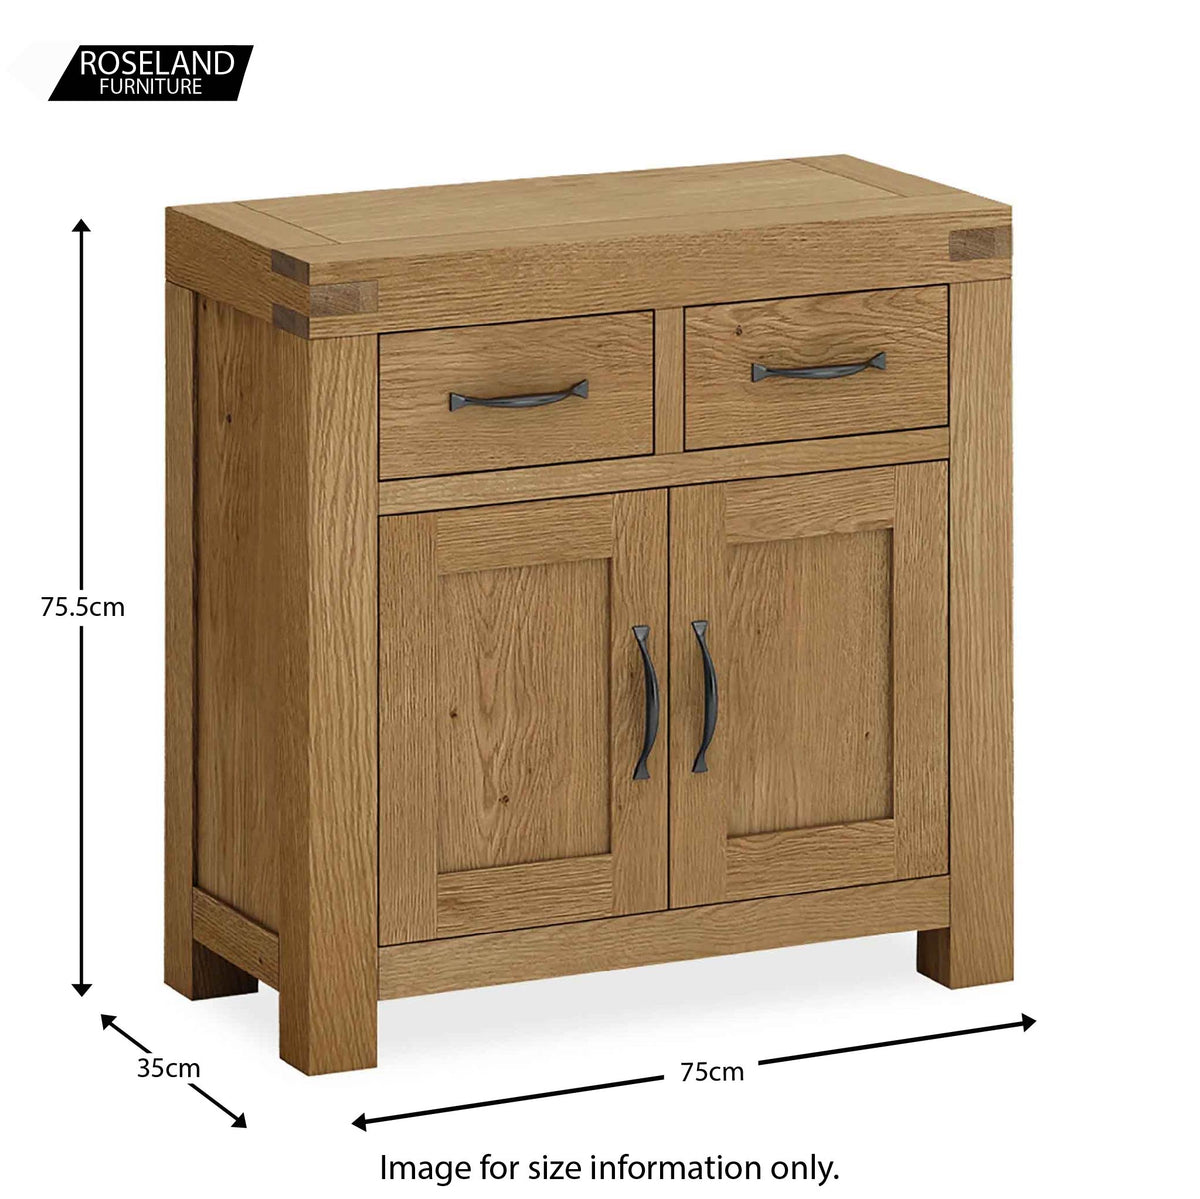 Abbey Grande Oak Mini Sideboard - Size guide